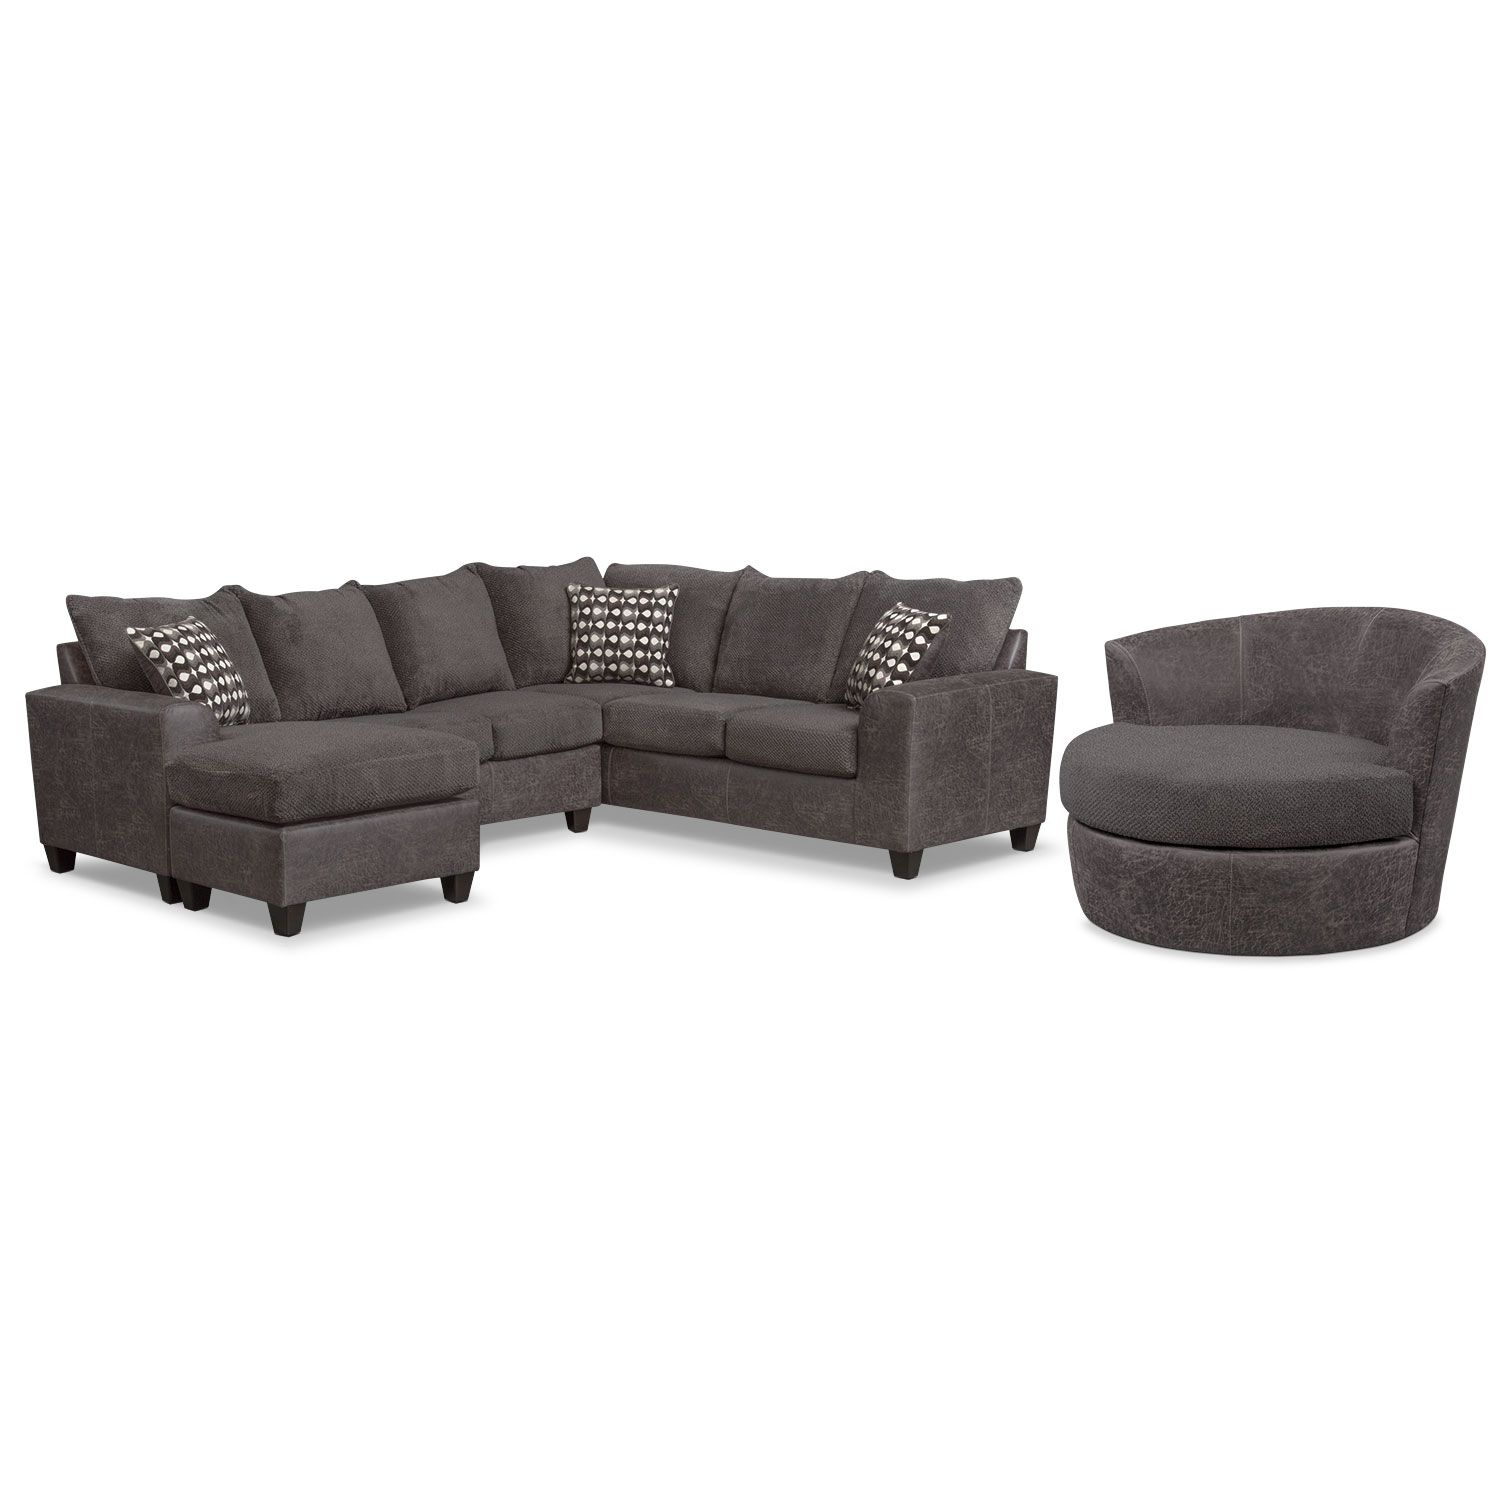 buy online d5079 d0fcb Brando 3-Piece Sectional with Chaise and Swivel Chair Set ...